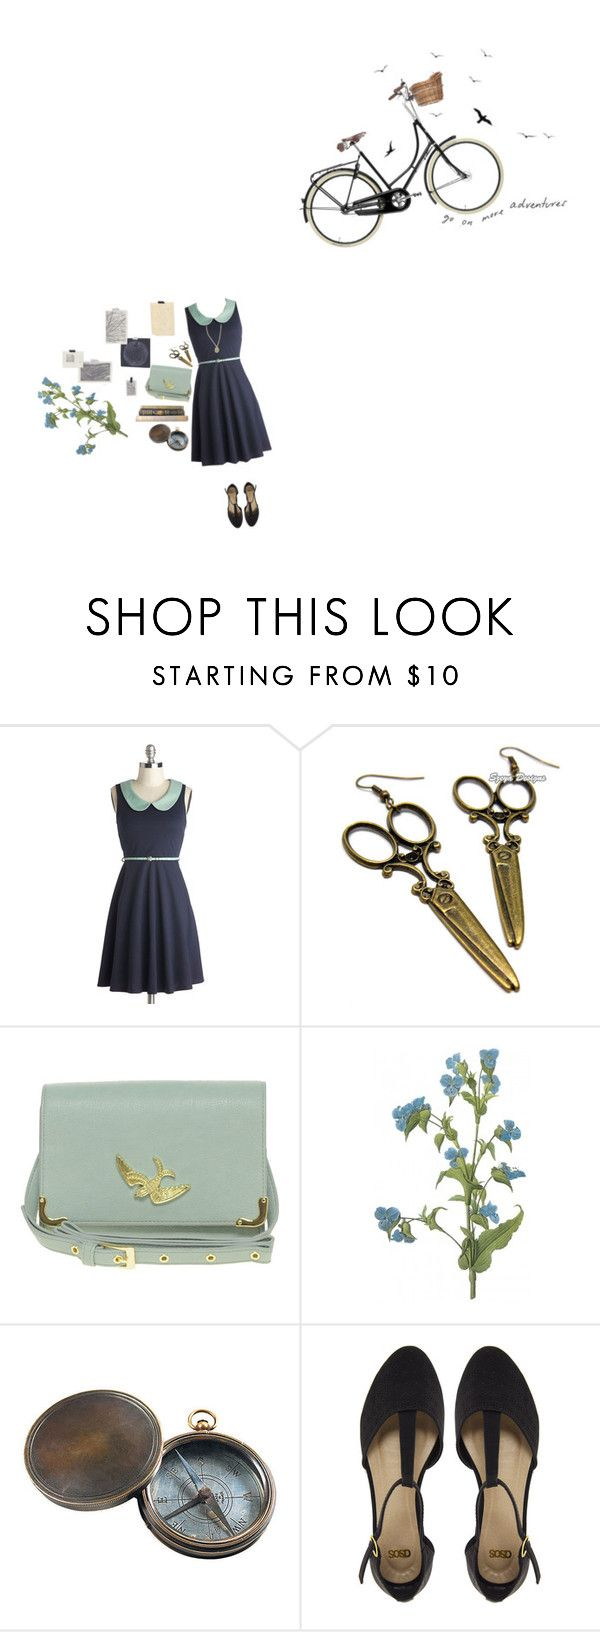 """""""More Adventures"""" by this-perfect-dream ❤ liked on Polyvore featuring ASOS, Timorous Beasties, Authentic Models, Urban Renewal, vintage, Hipster, indie, girly and plus size dresses"""